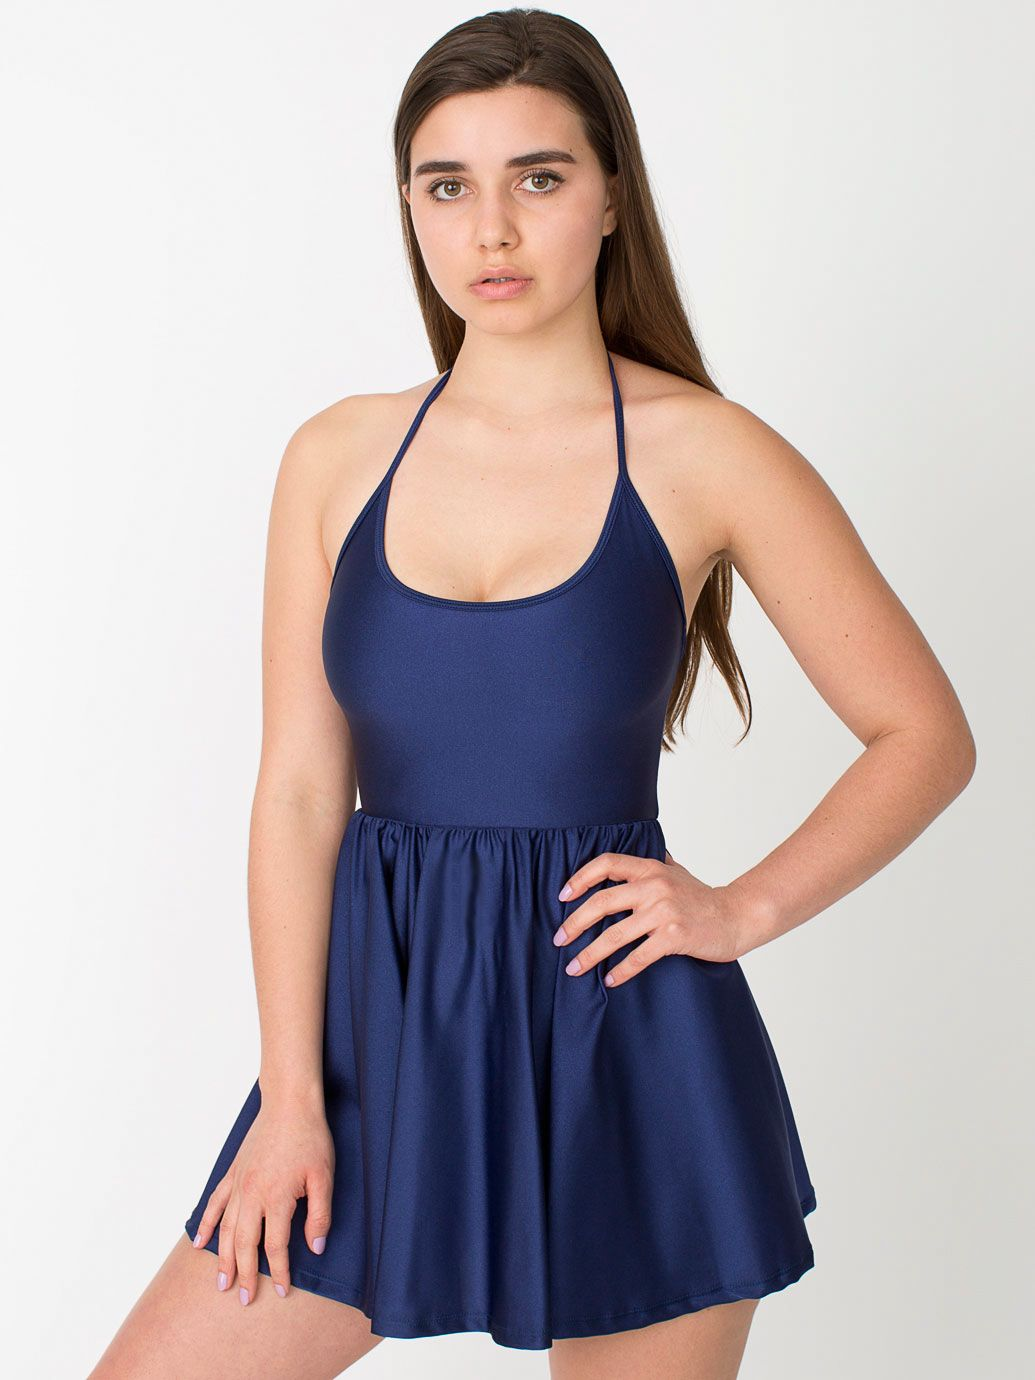 Mini  Brand American Apparel All-Teen-Clothing is a great spot to ... 24825ed9b